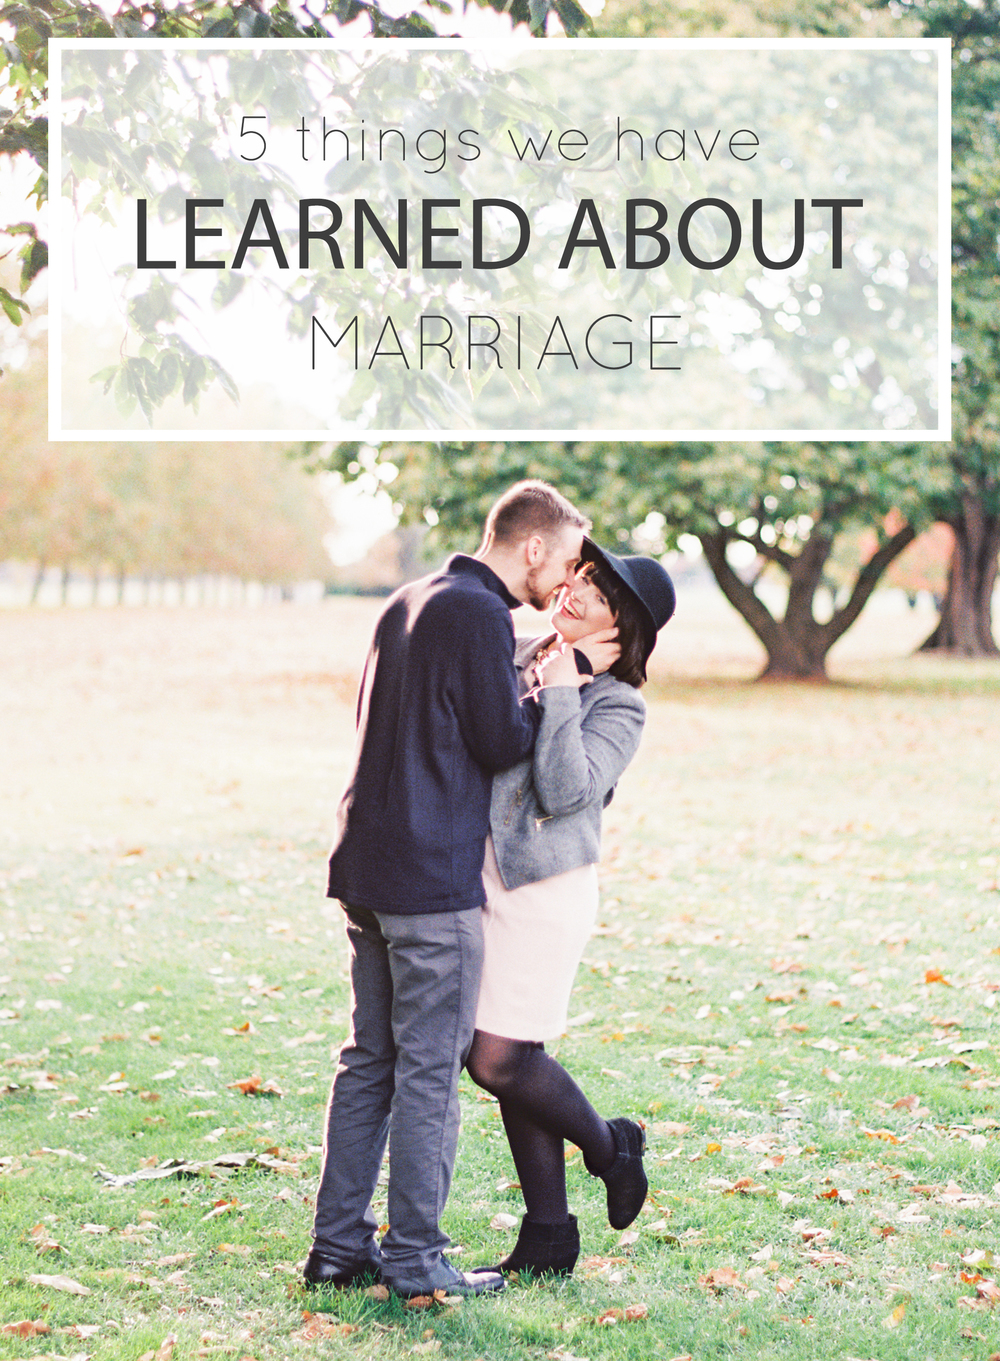 5 Things We Have Learned About Marriage - The Jordan Brittley Blog